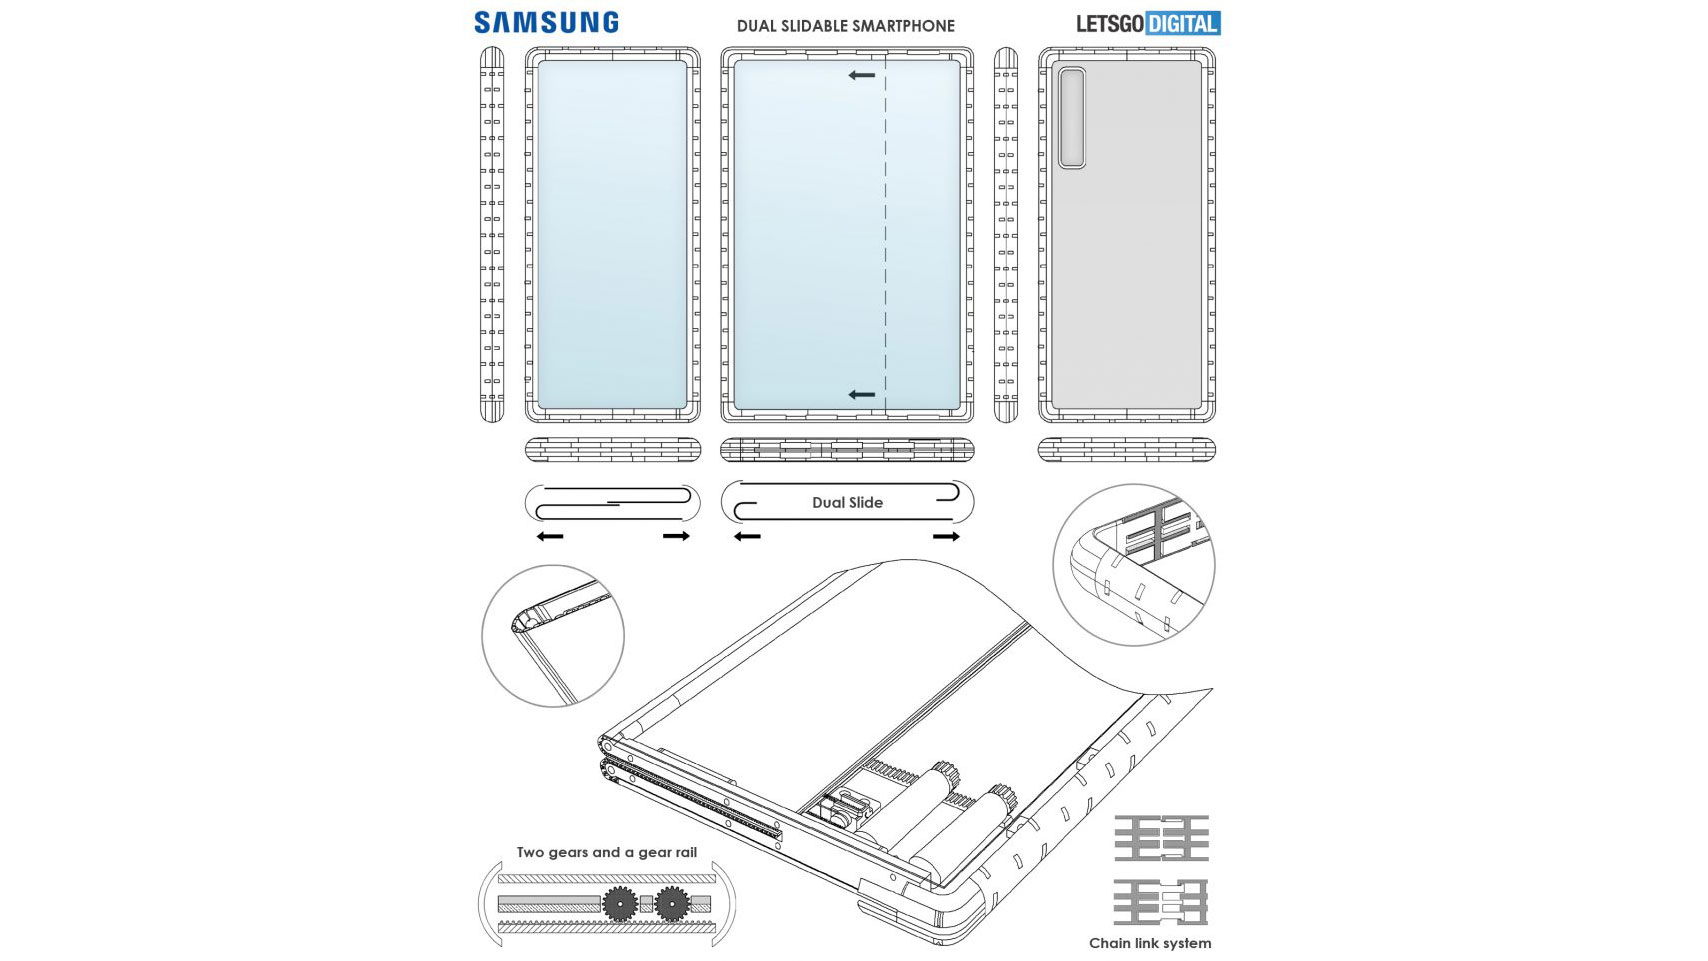 Samsung rollable smartphone